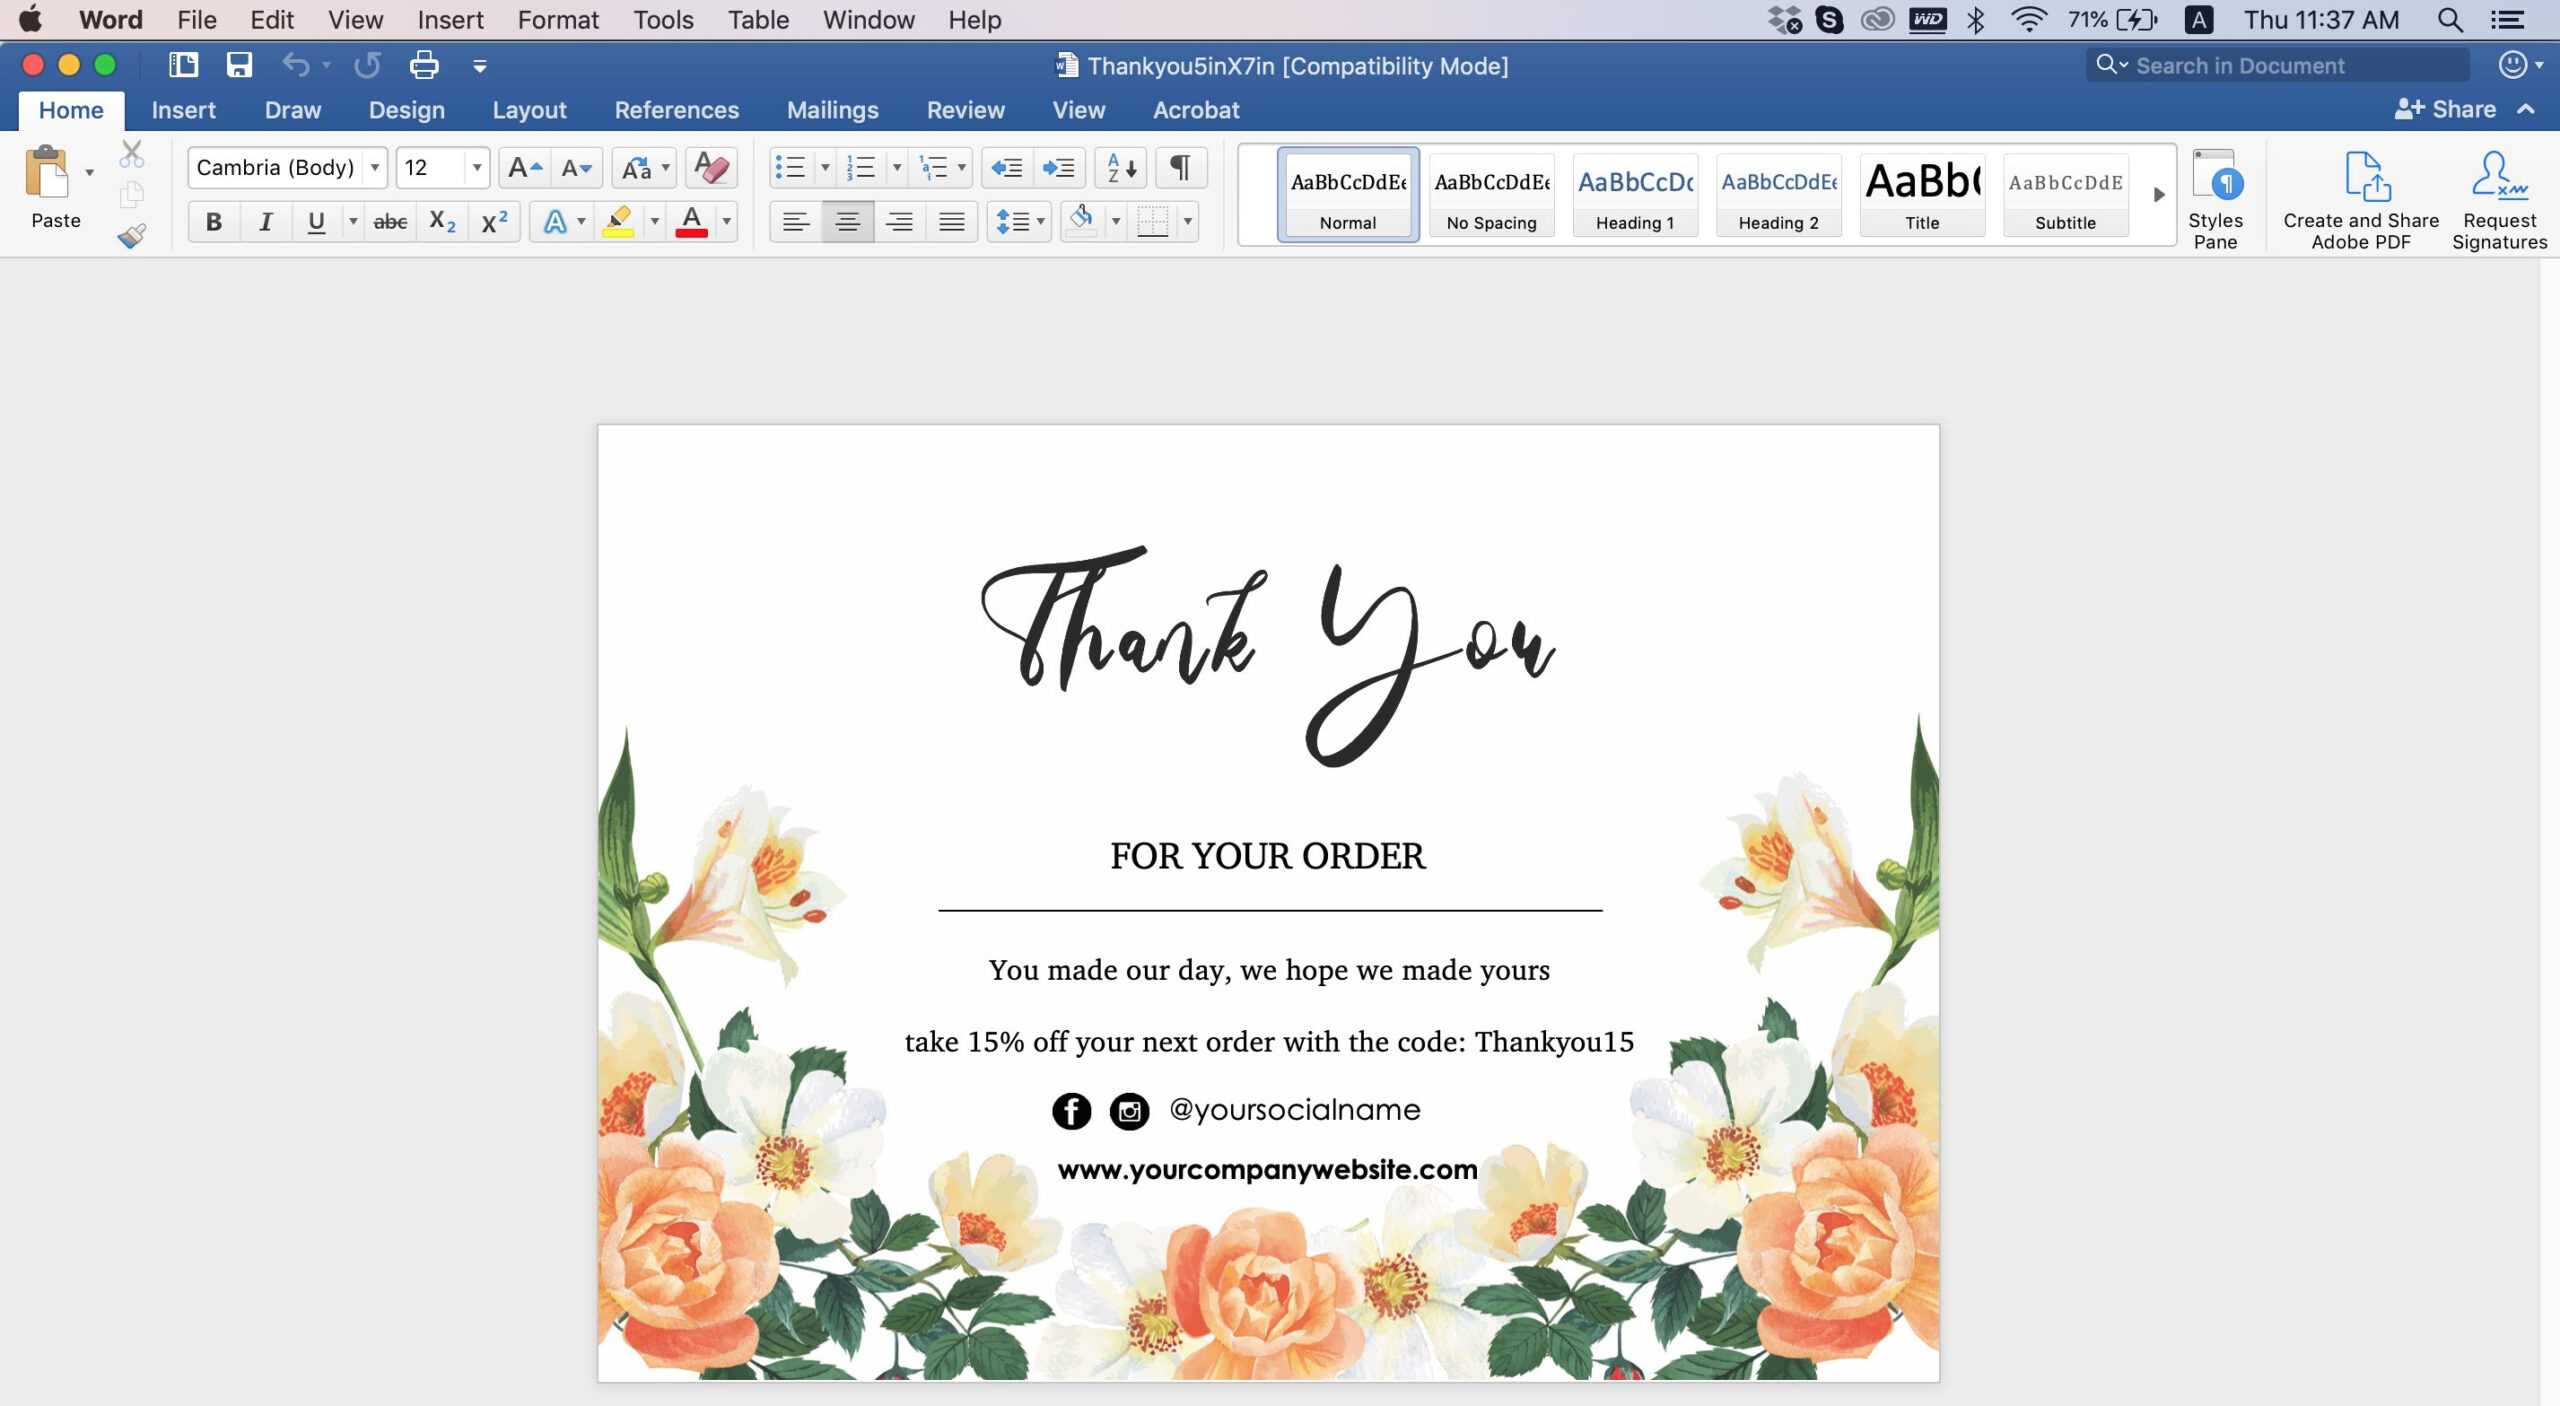 009 Editable Thank You Post Card Template Word Top Ideas With Regard To Thank You Card Template Word